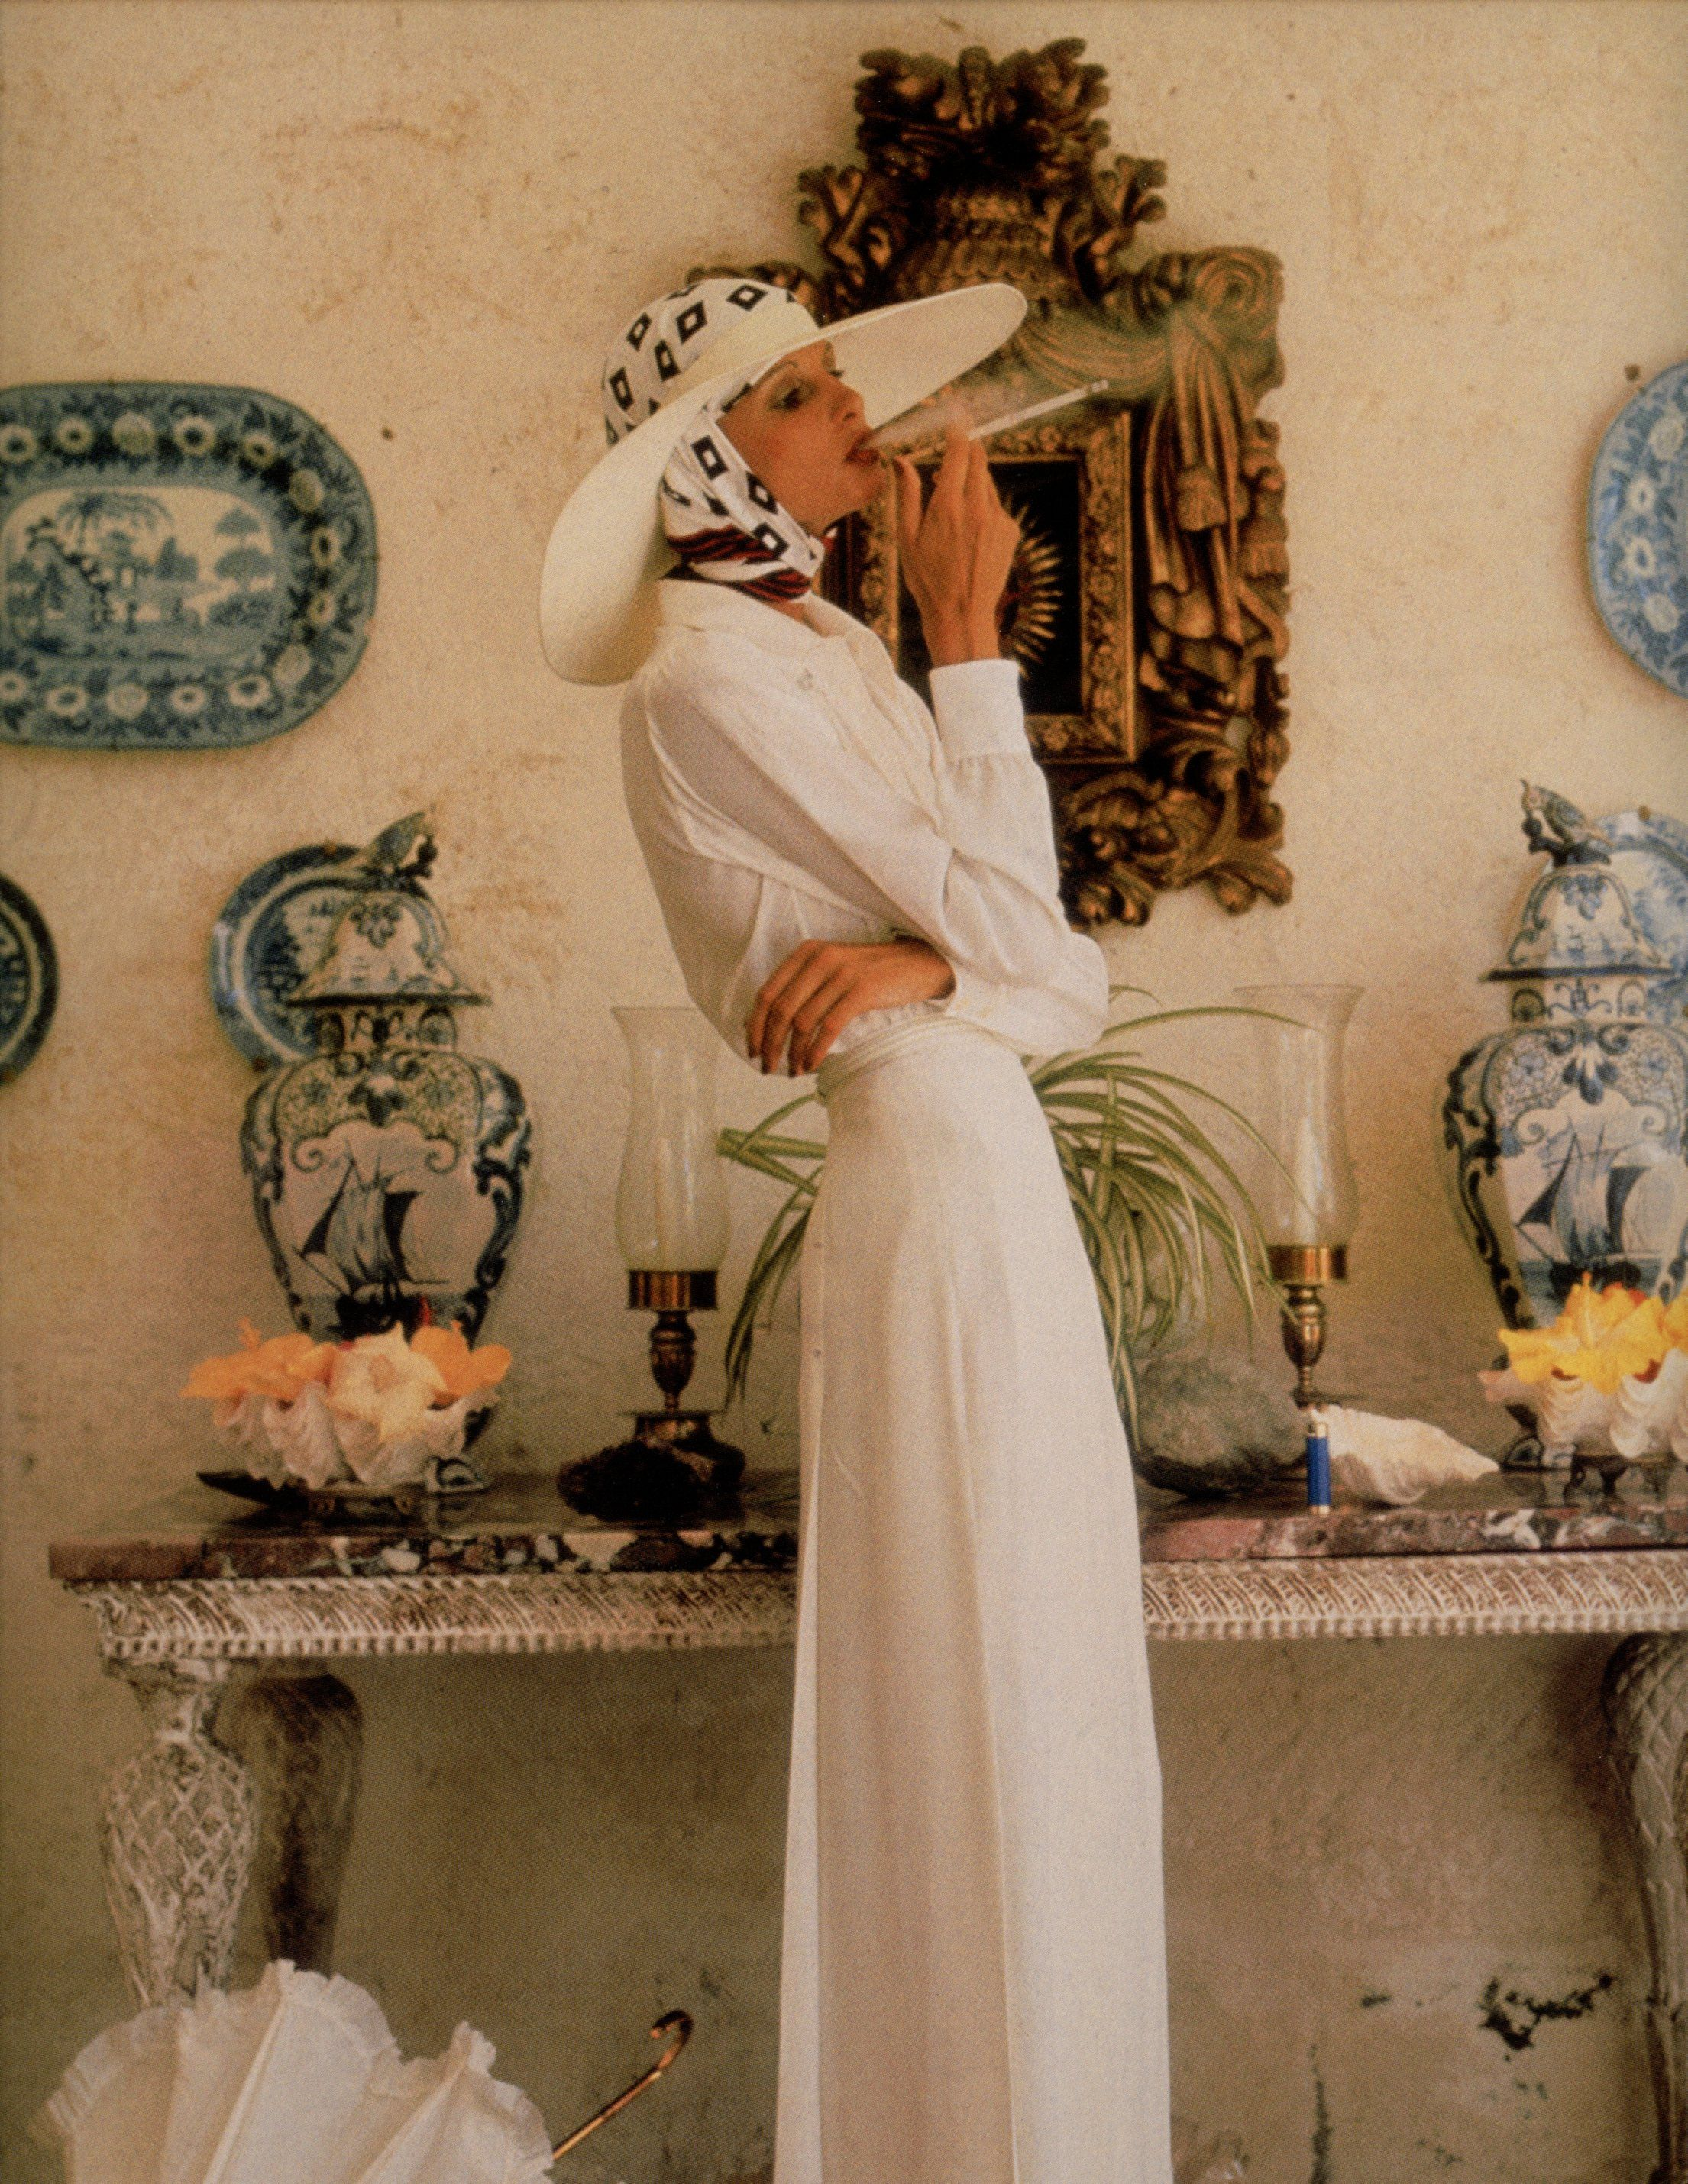 Appollonia van Ravenstein, photographed by Norman Parkinson for Vogue UK, 1973. Oliver Messel's house. 70s summer style.